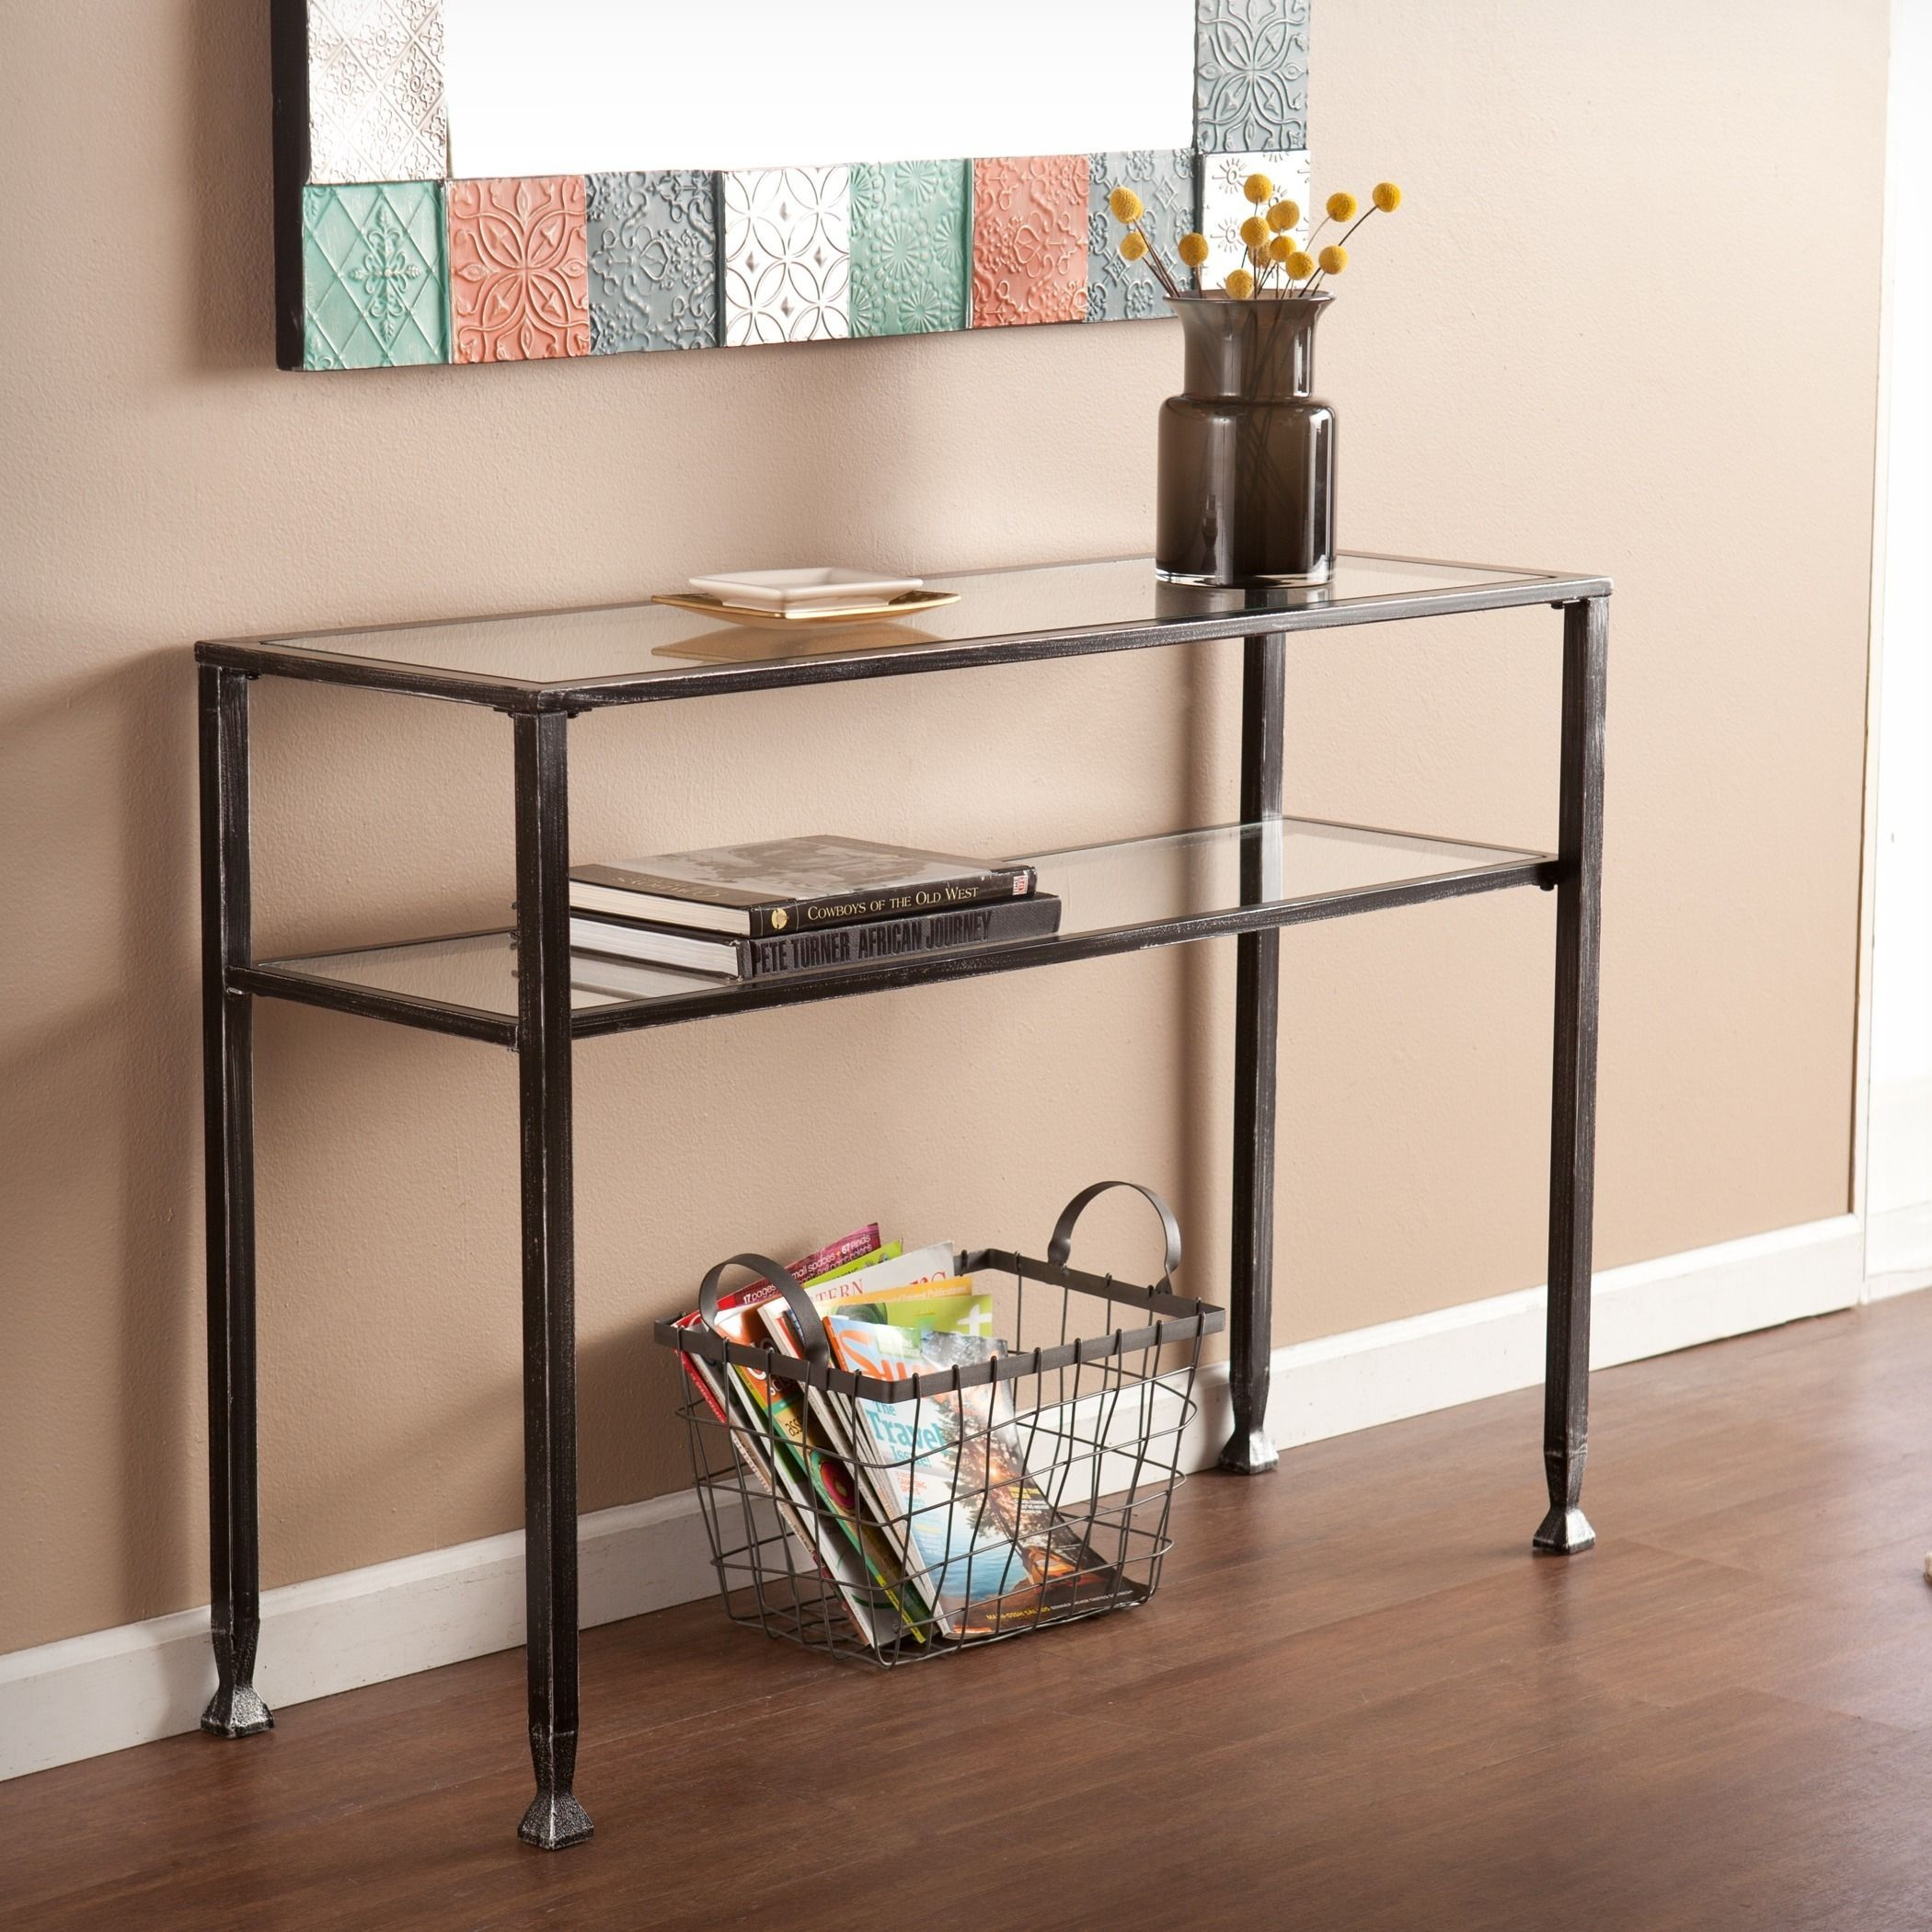 Youll appreciate the extra display space this modern metal sofa youll appreciate the extra display space this modern metal sofa table adds to your home geotapseo Image collections